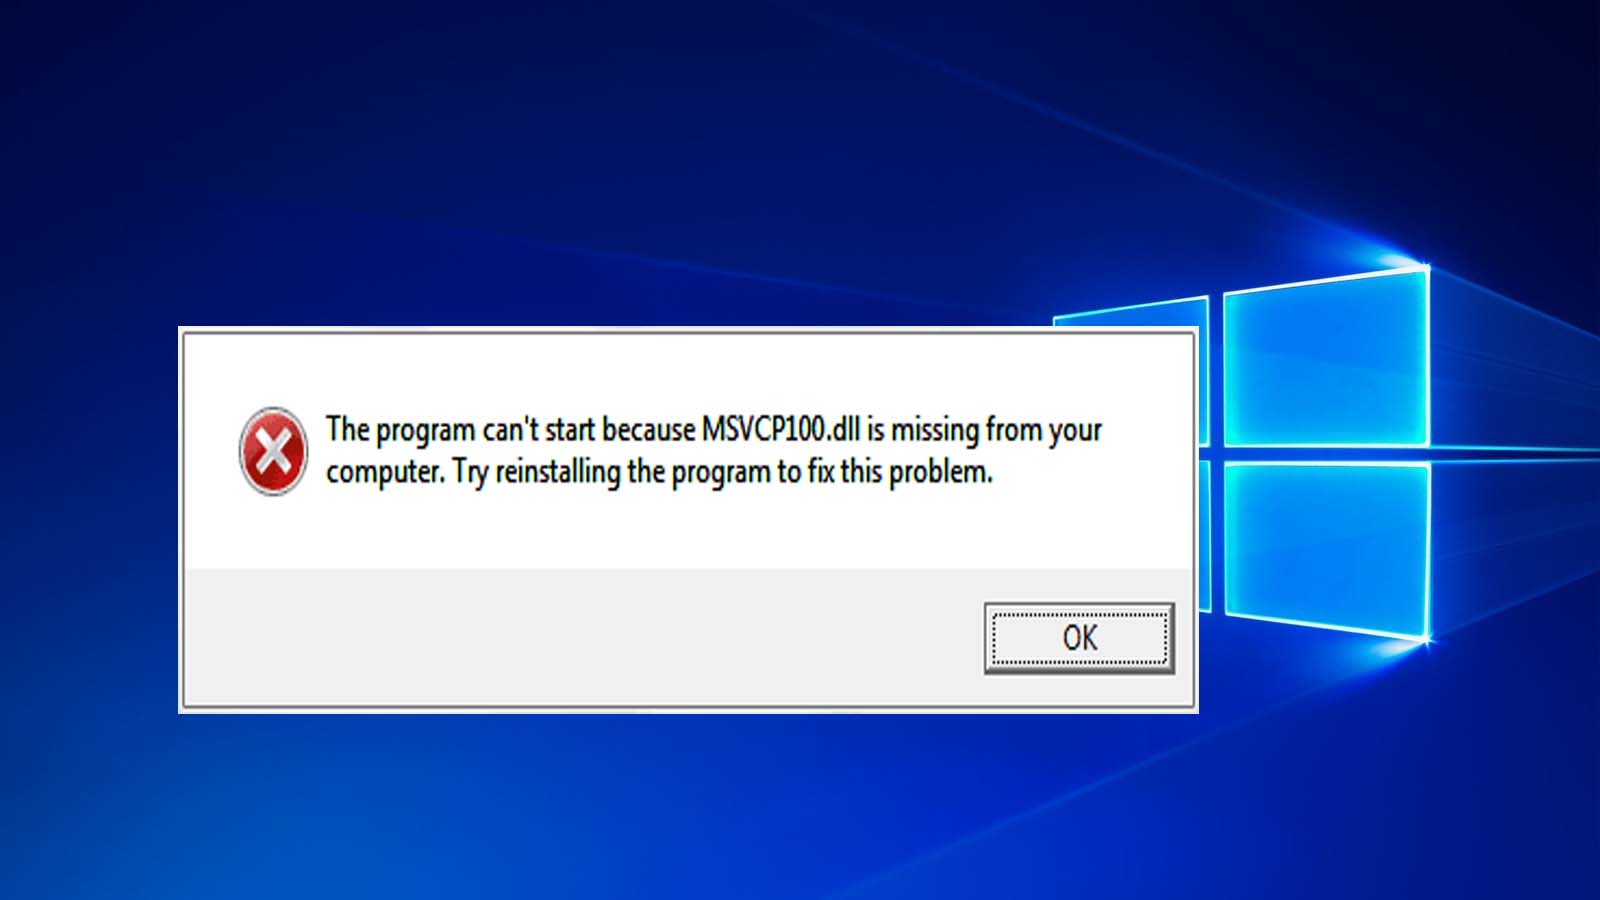 program cant start because msvcp100.dll is missing